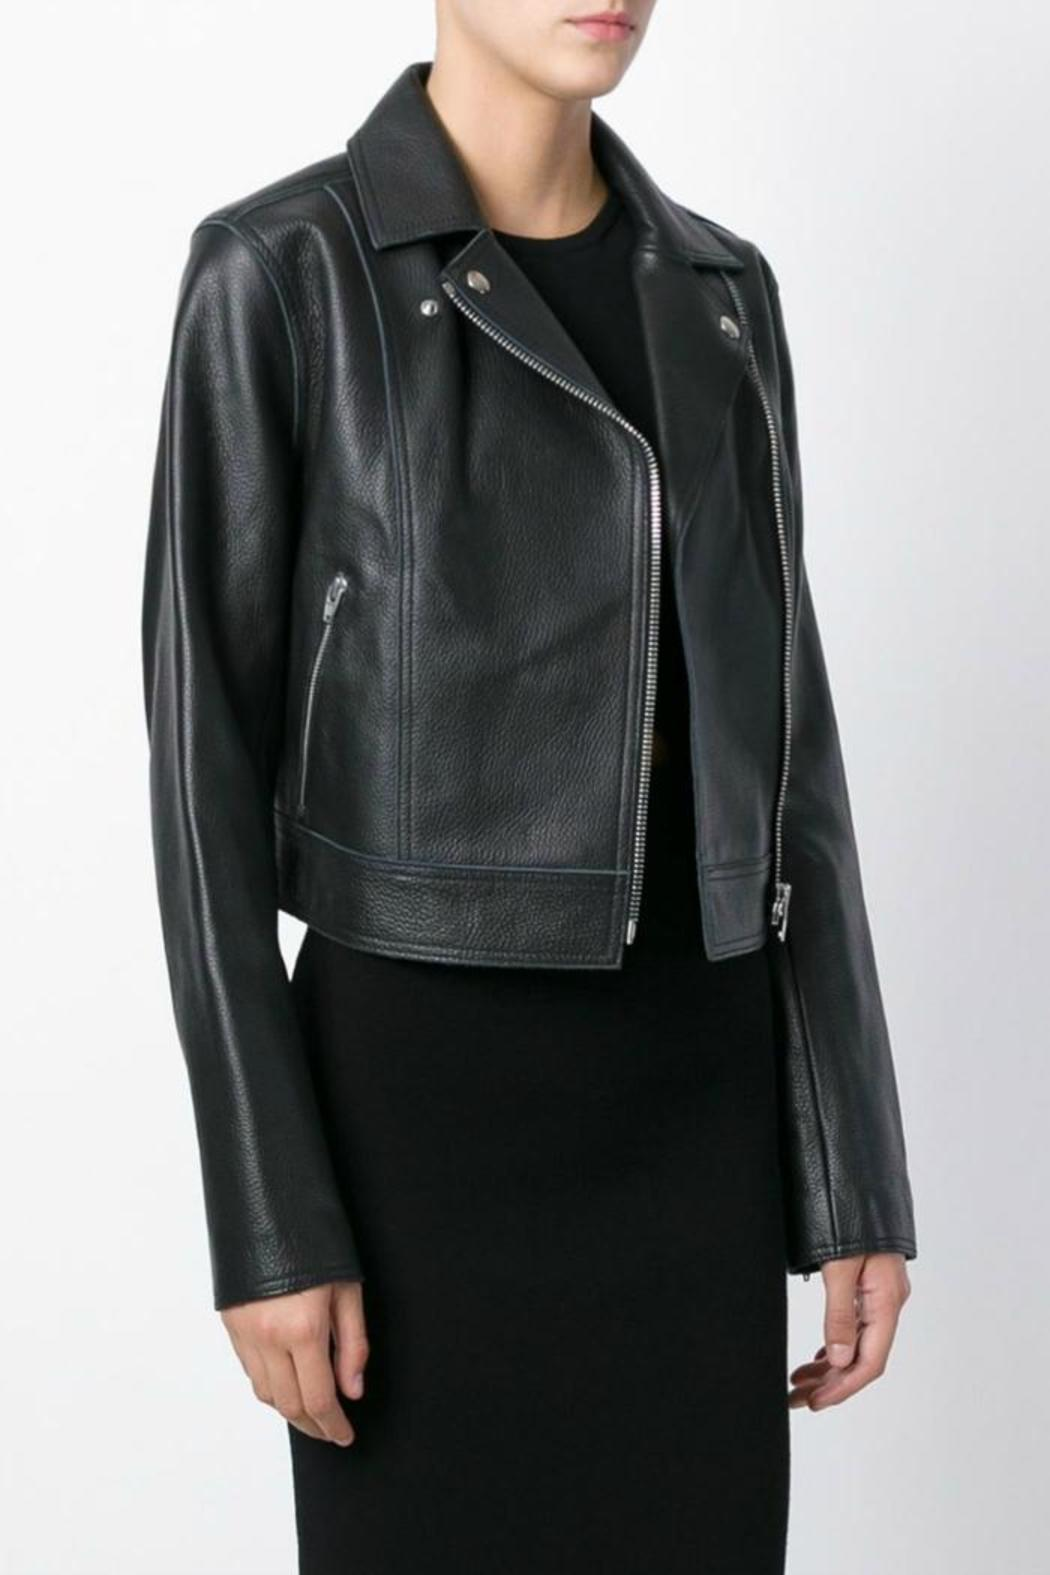 Shop leather jackets